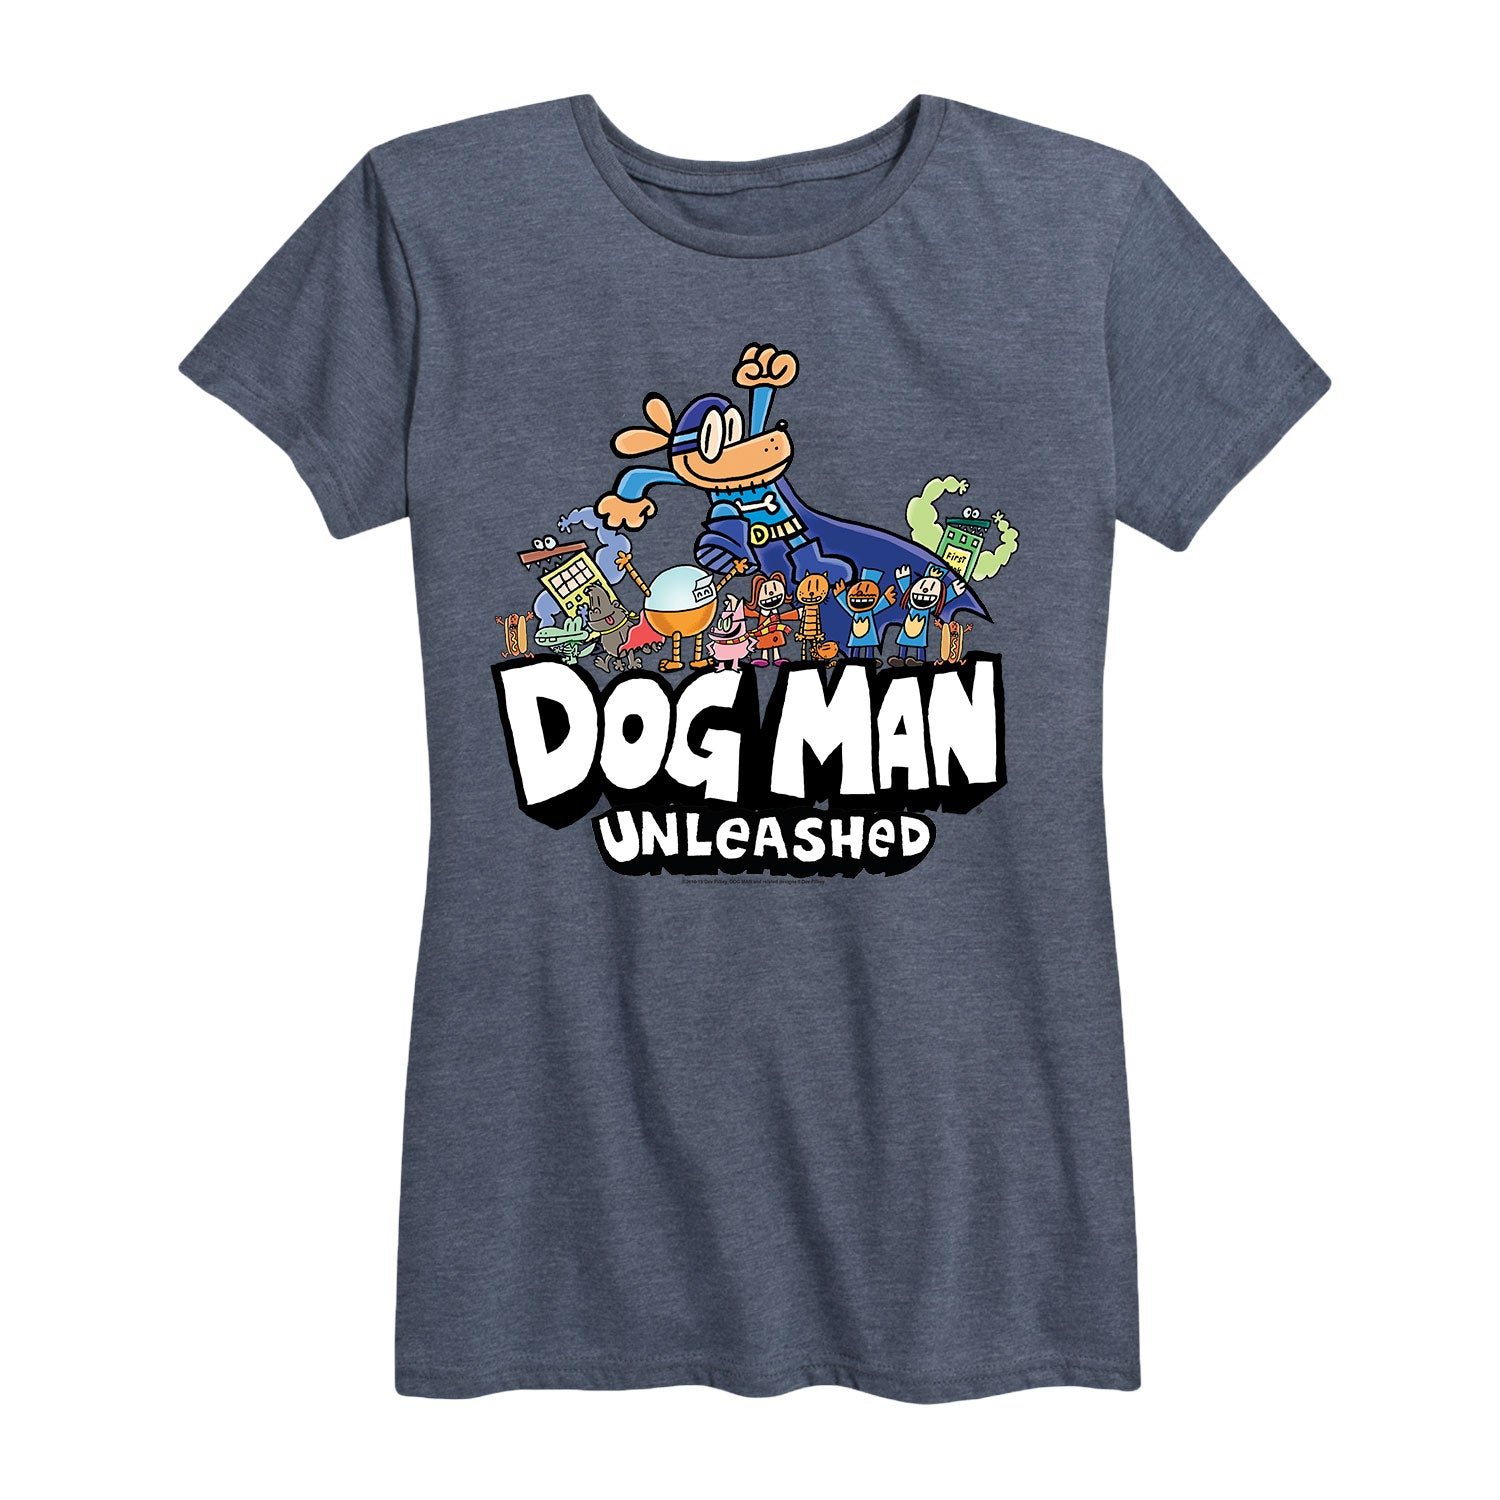 Dog Man Everyone - Women's Short Sleeve T-Shirt